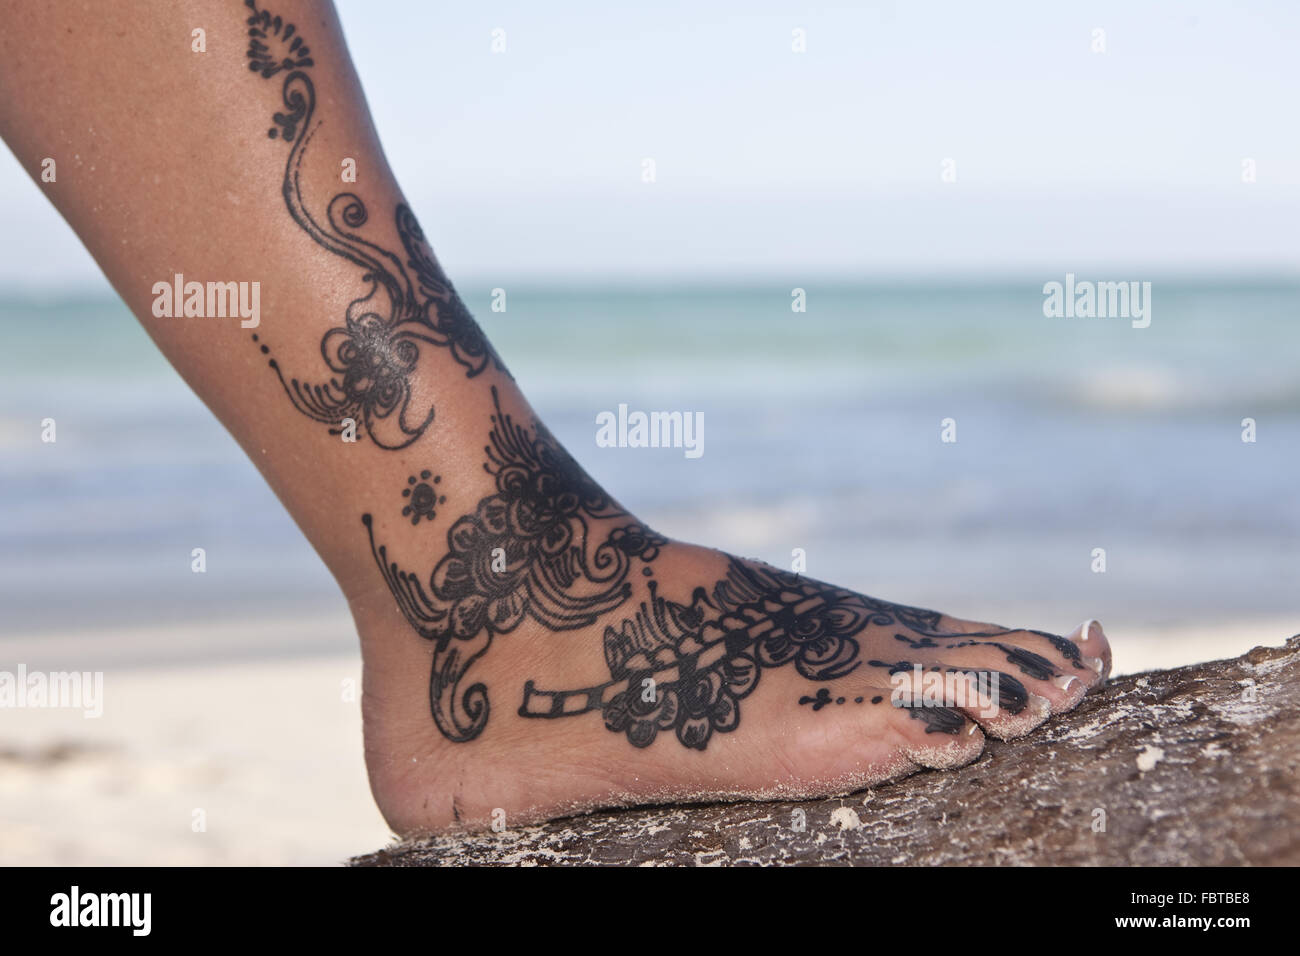 tatouage au henn sur un pied banque d 39 images photo stock 93348928 alamy. Black Bedroom Furniture Sets. Home Design Ideas